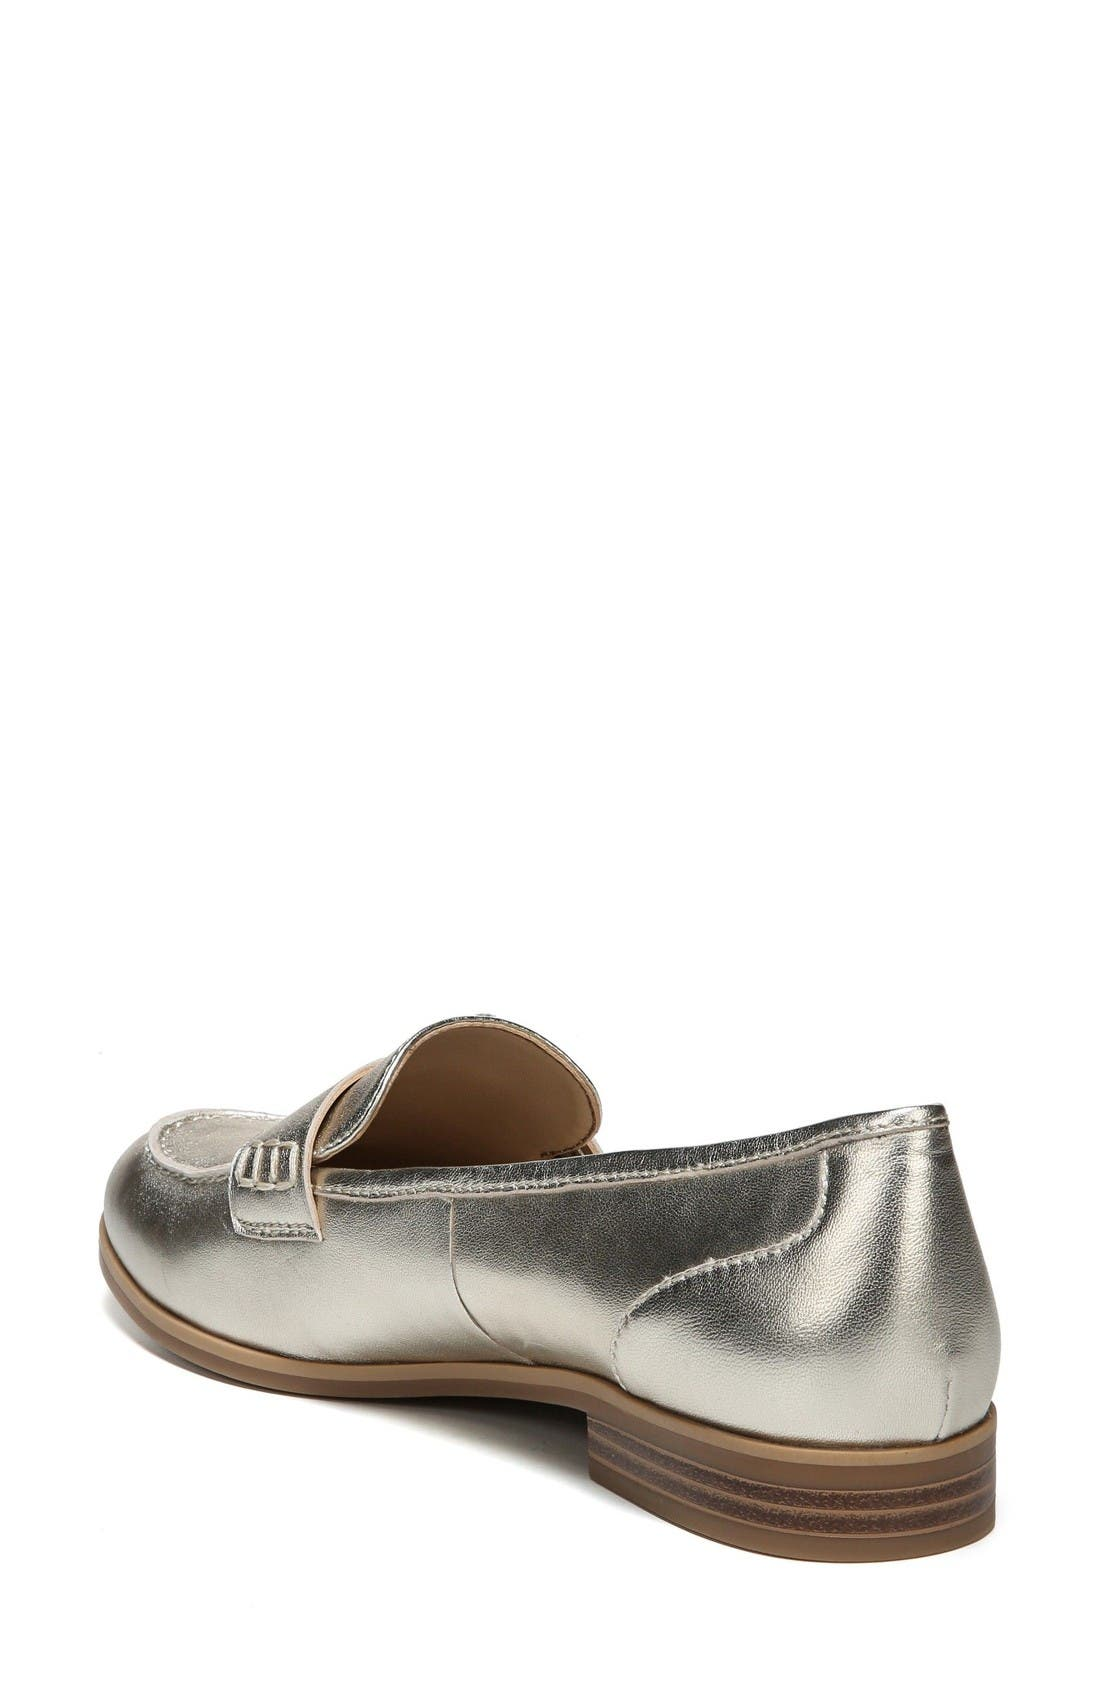 Veronica Loafer,                             Alternate thumbnail 2, color,                             Platina Leather